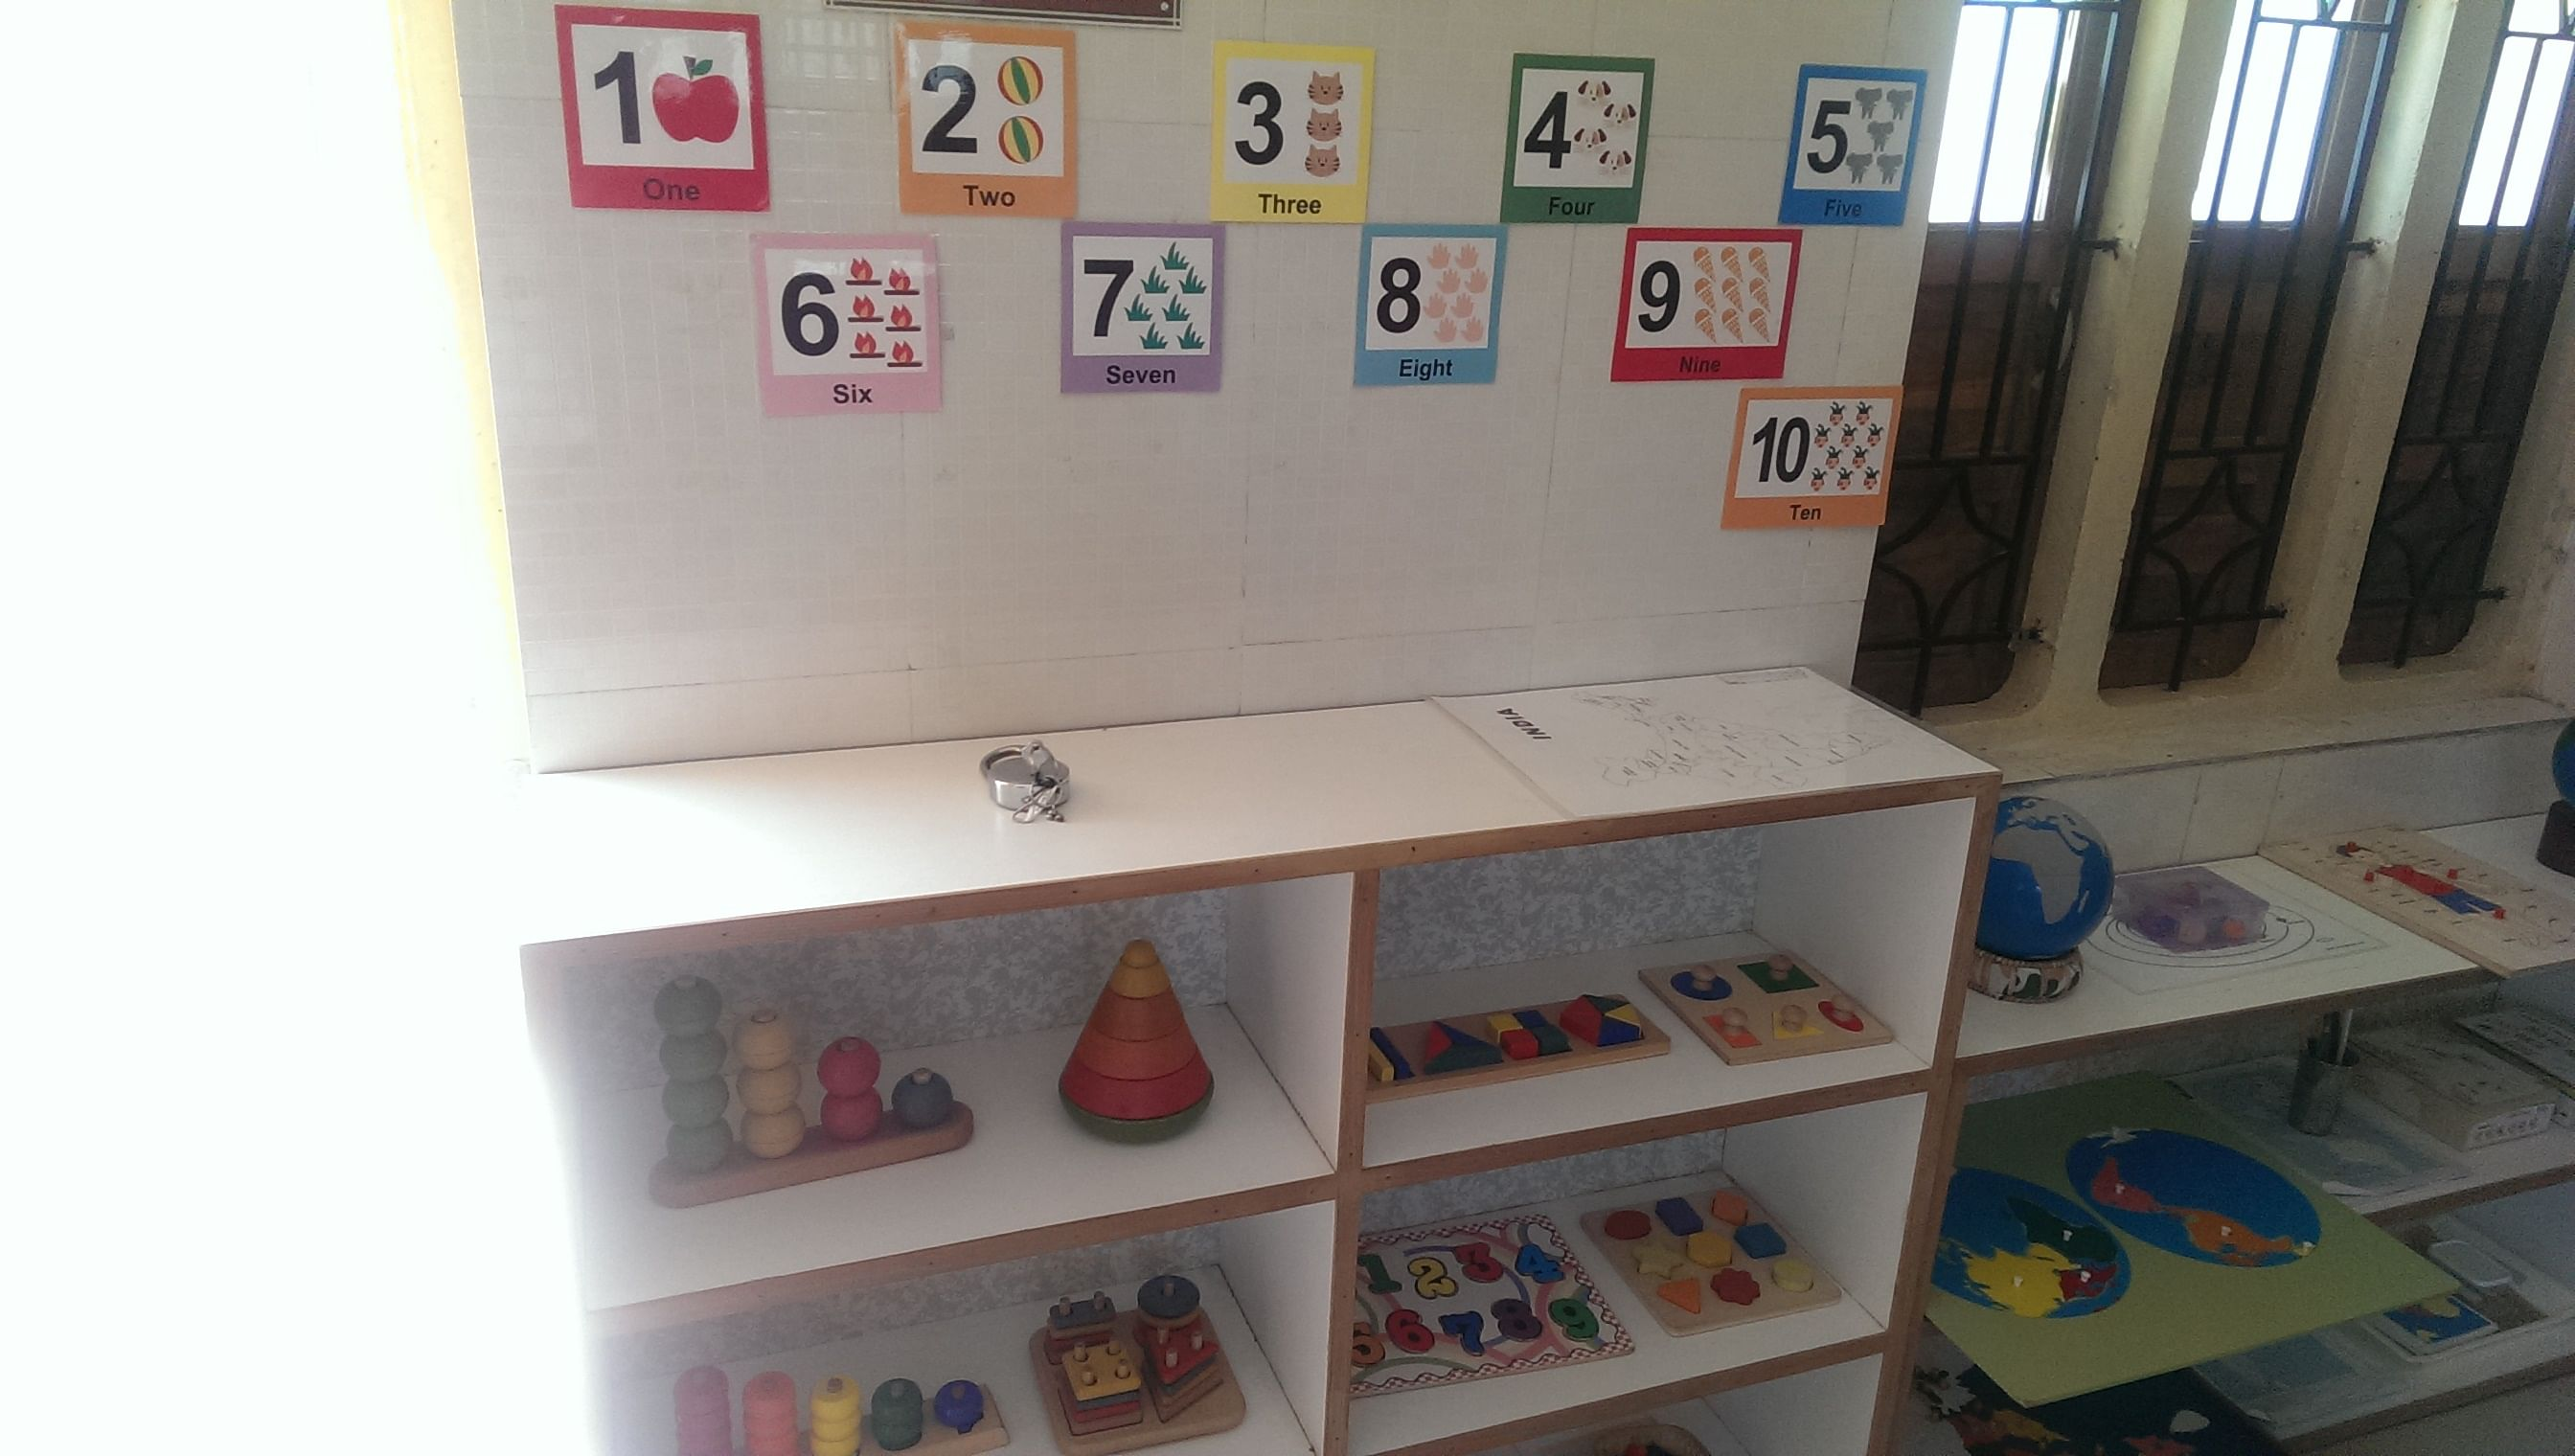 In 2013, Negi converted a playschool into a montessori.